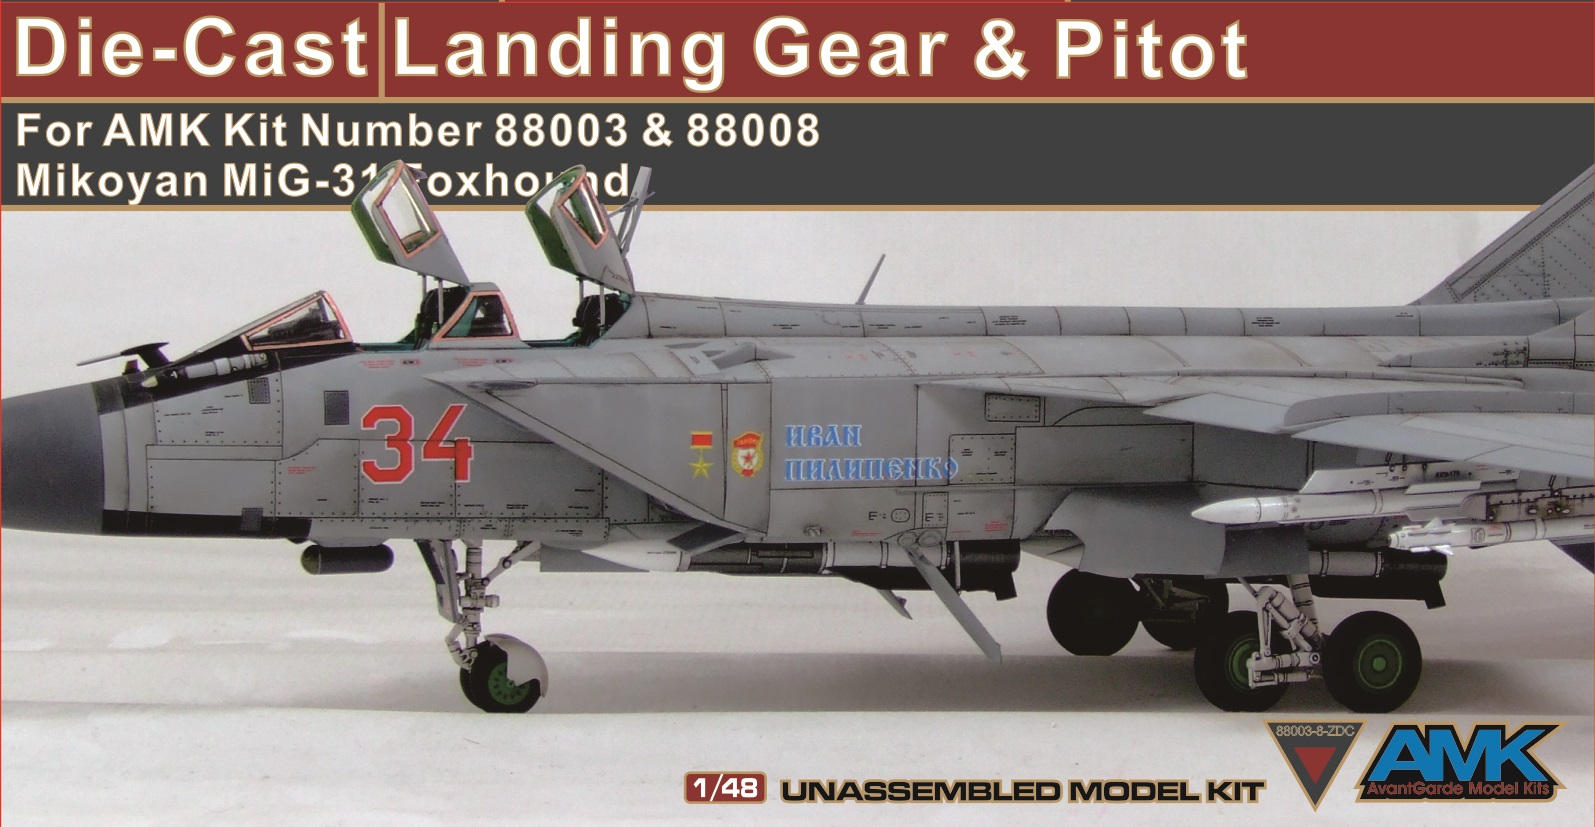 Metal Landing Gear and Pitot for MiG-31 Foxhound